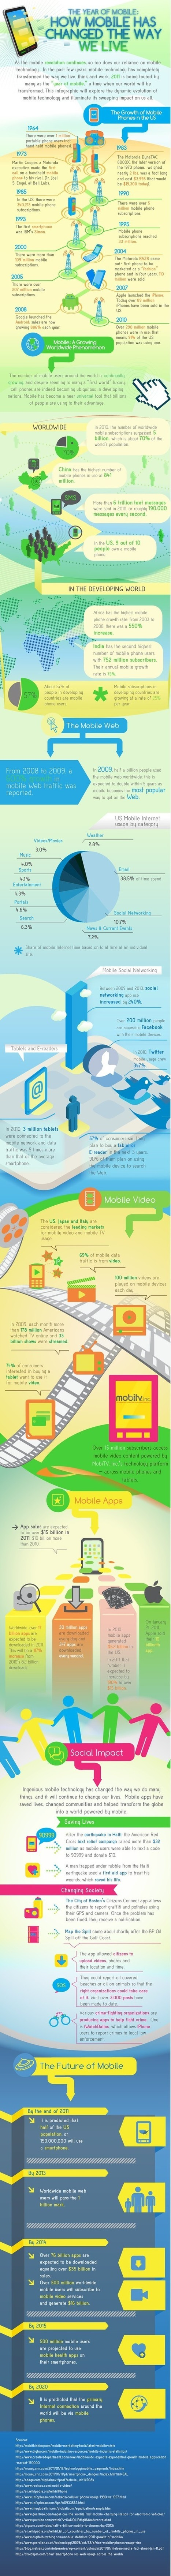 The Year of Mobile & How it Has Changed the Way We Live [Infographic] | Mobile Marketing Strategy and beyond | Scoop.it